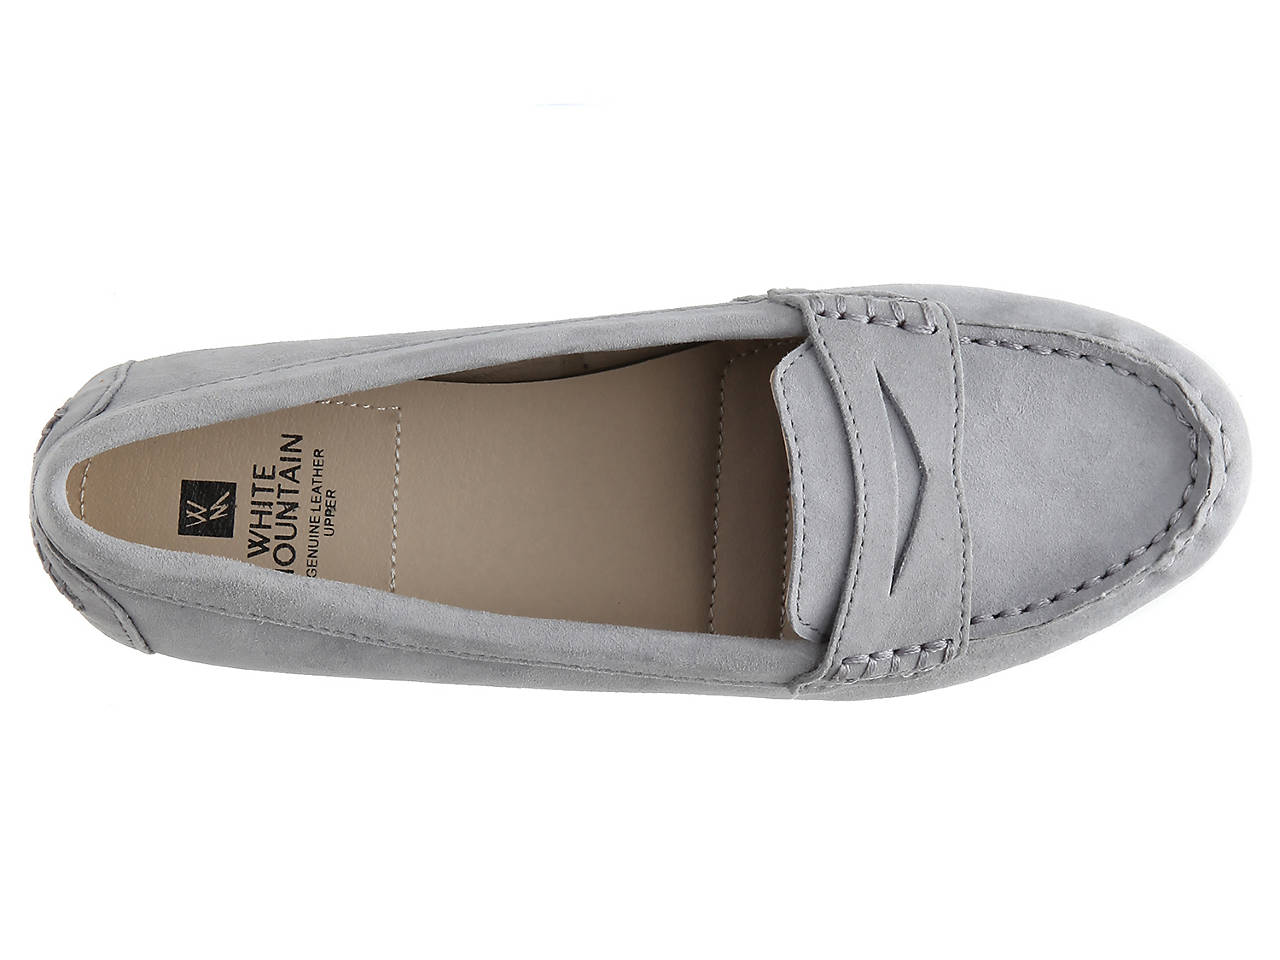 c3541dd2694 White Mountain Maurice Loafer Women s Shoes